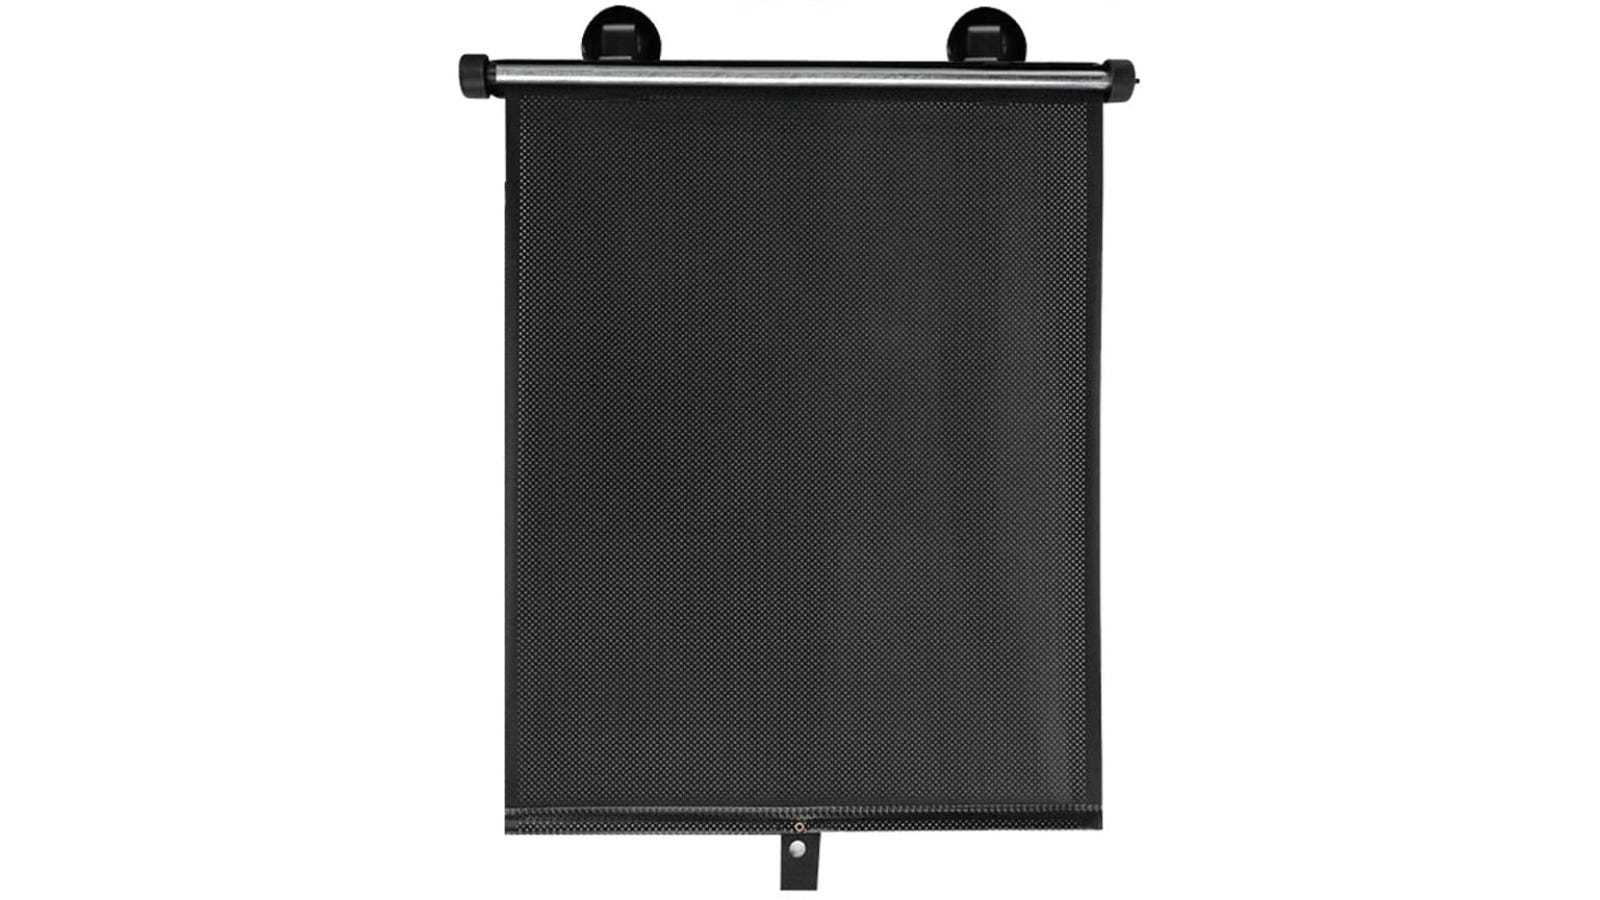 A rectangular sunshade that retracts into a black pole.